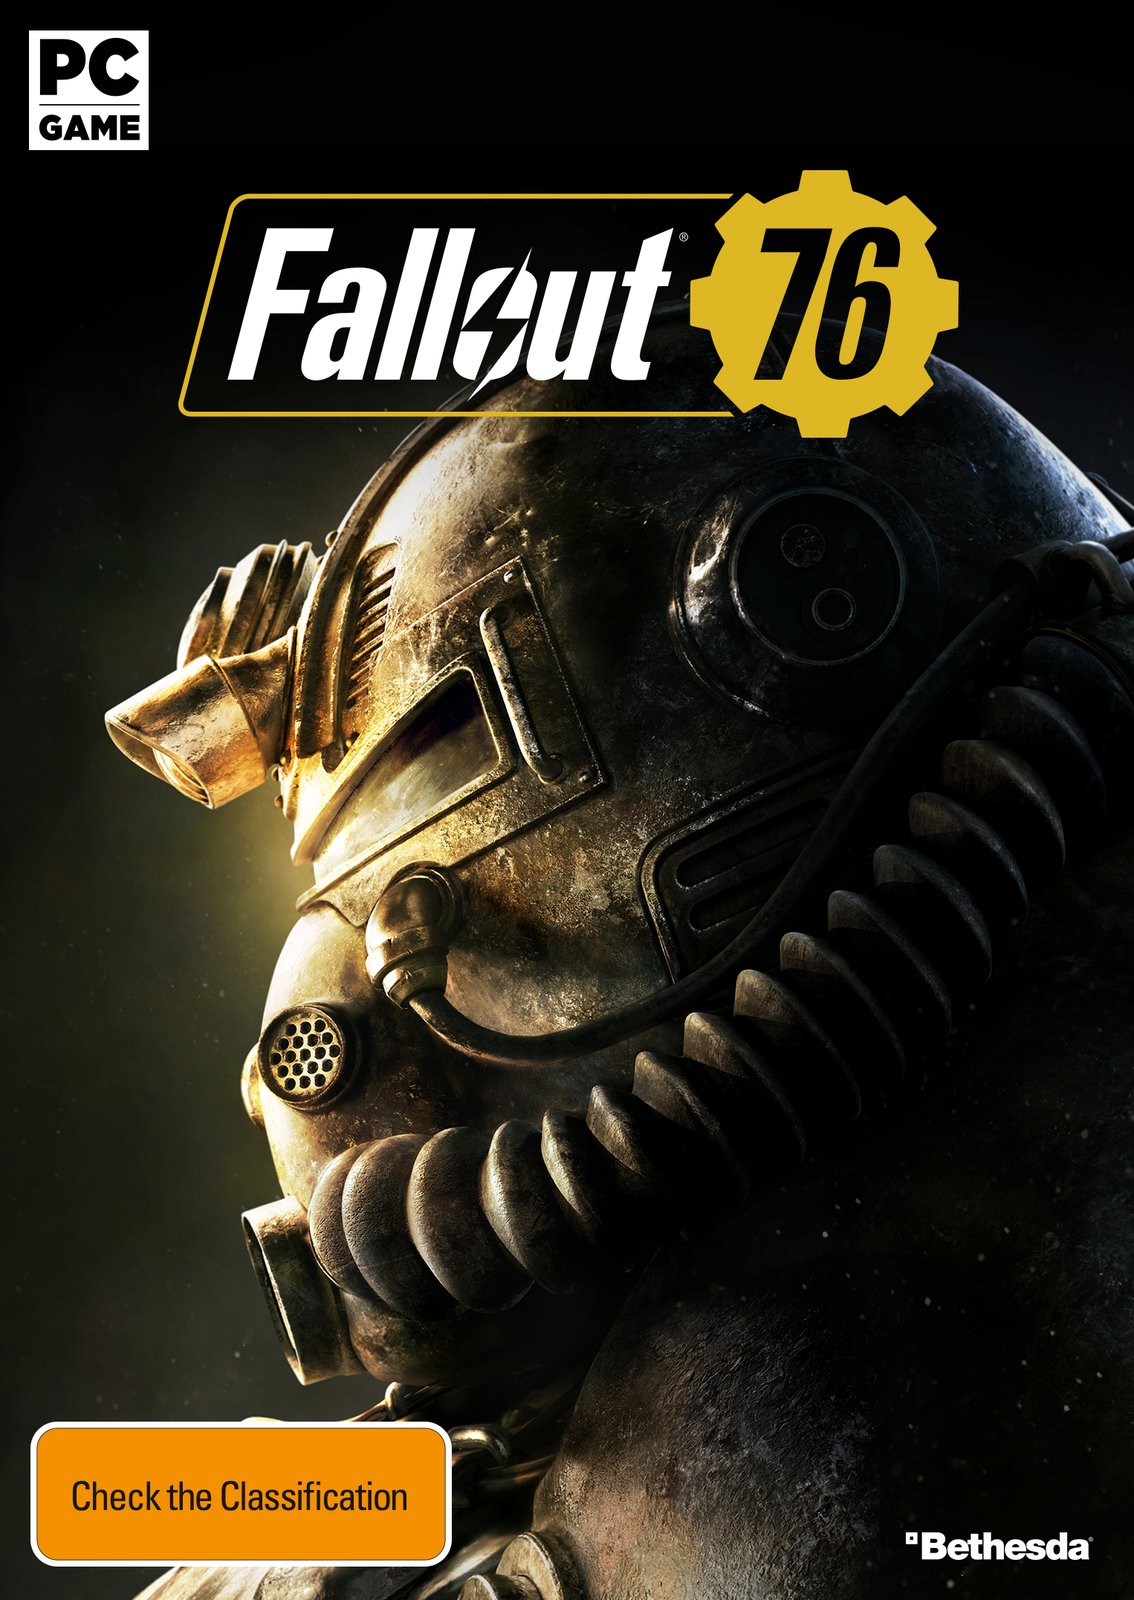 Fallout 76 for PC Games image